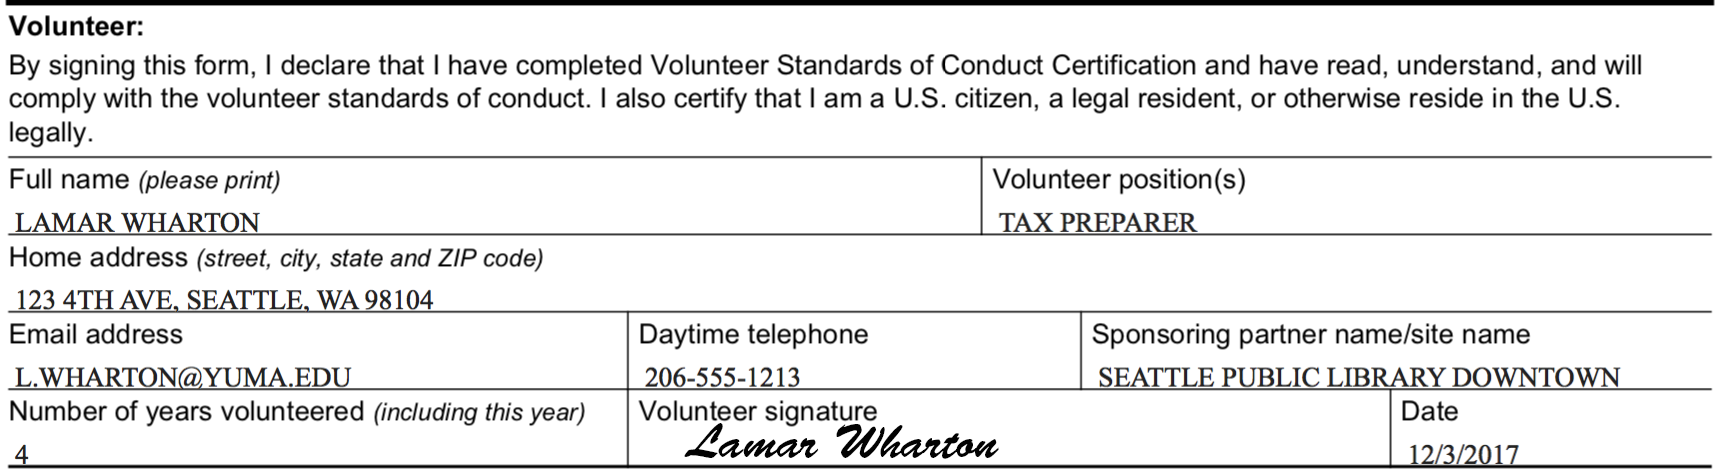 Example of a complete volunteer section of the Volunteer Agreement